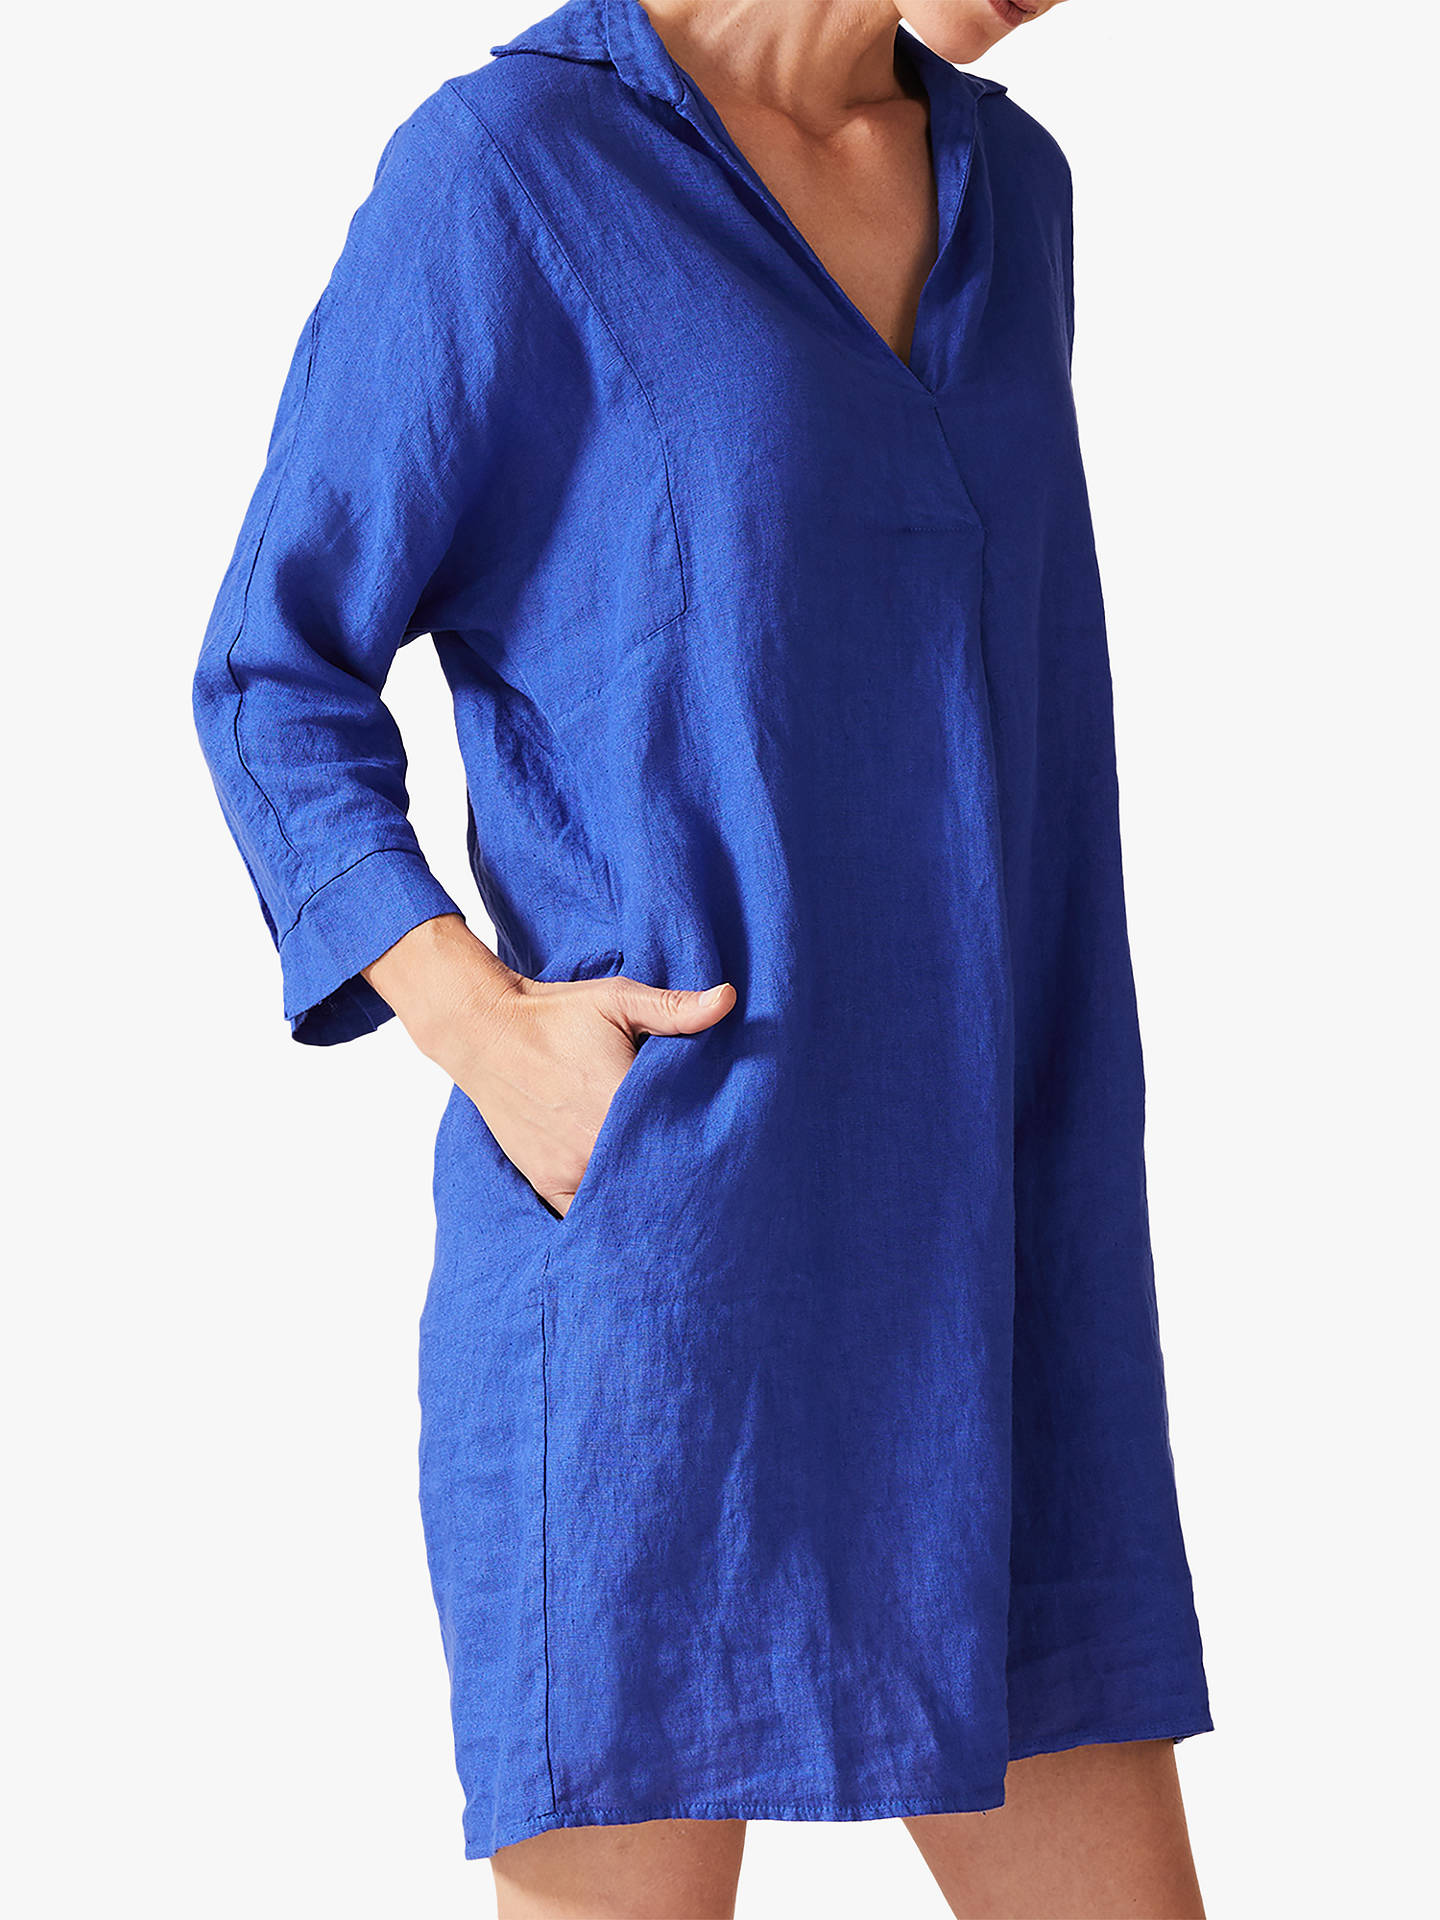 Buy Phase Eight Kathy Linen Dress, Cobalt, 14 Online at johnlewis.com